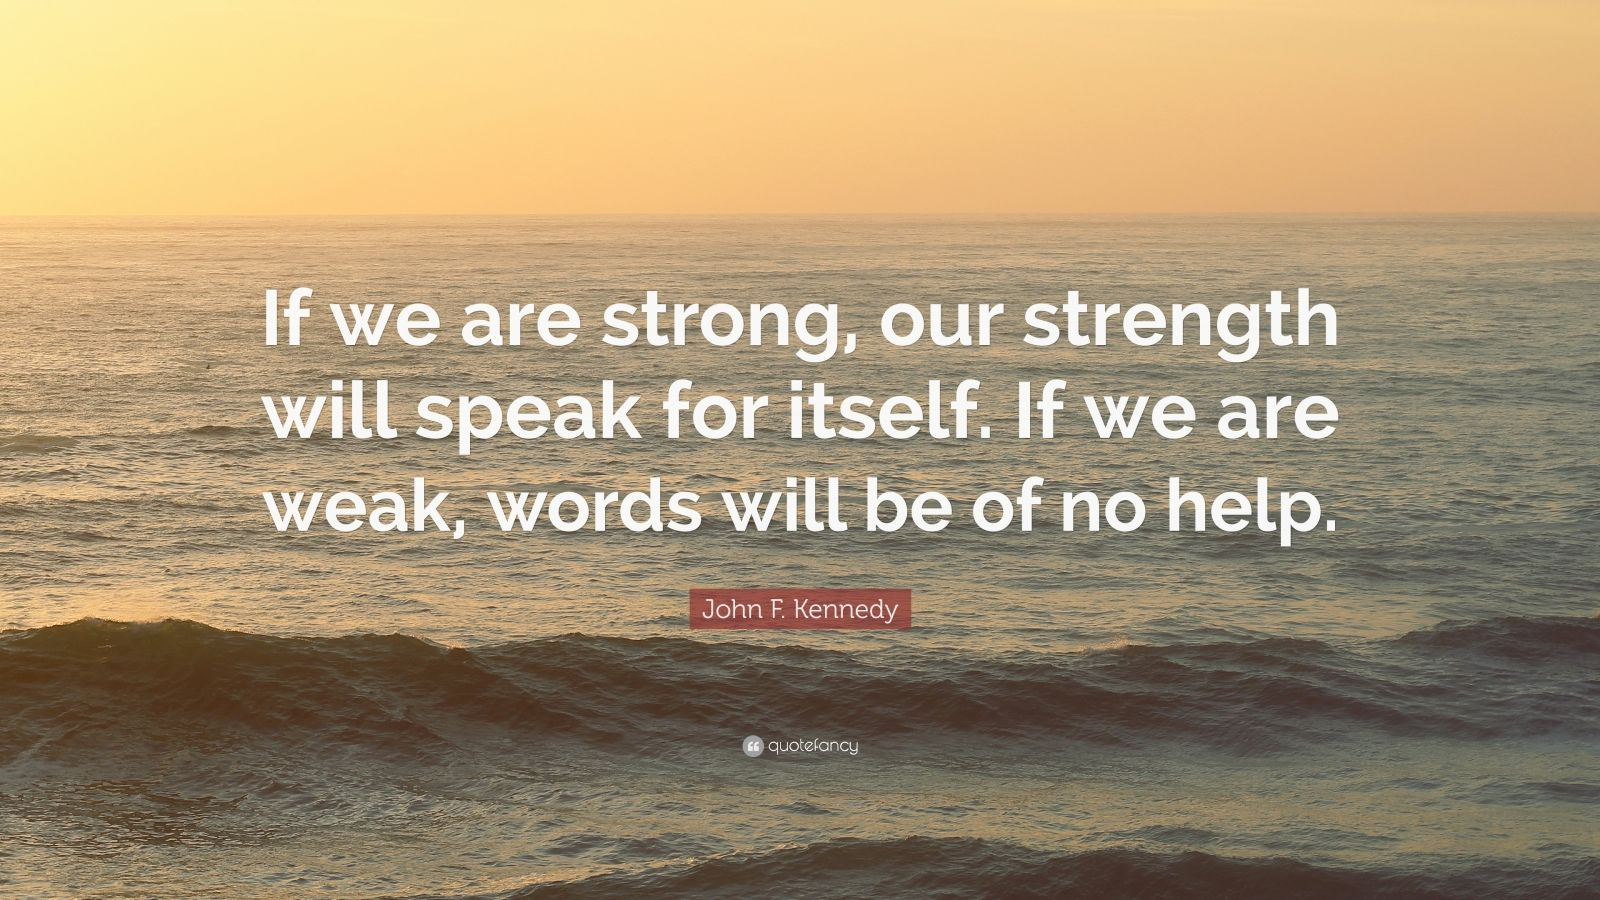 """John F. Kennedy Quote: """"If we are strong, our strength will speak for itself. If we are weak, words will be of no help."""""""